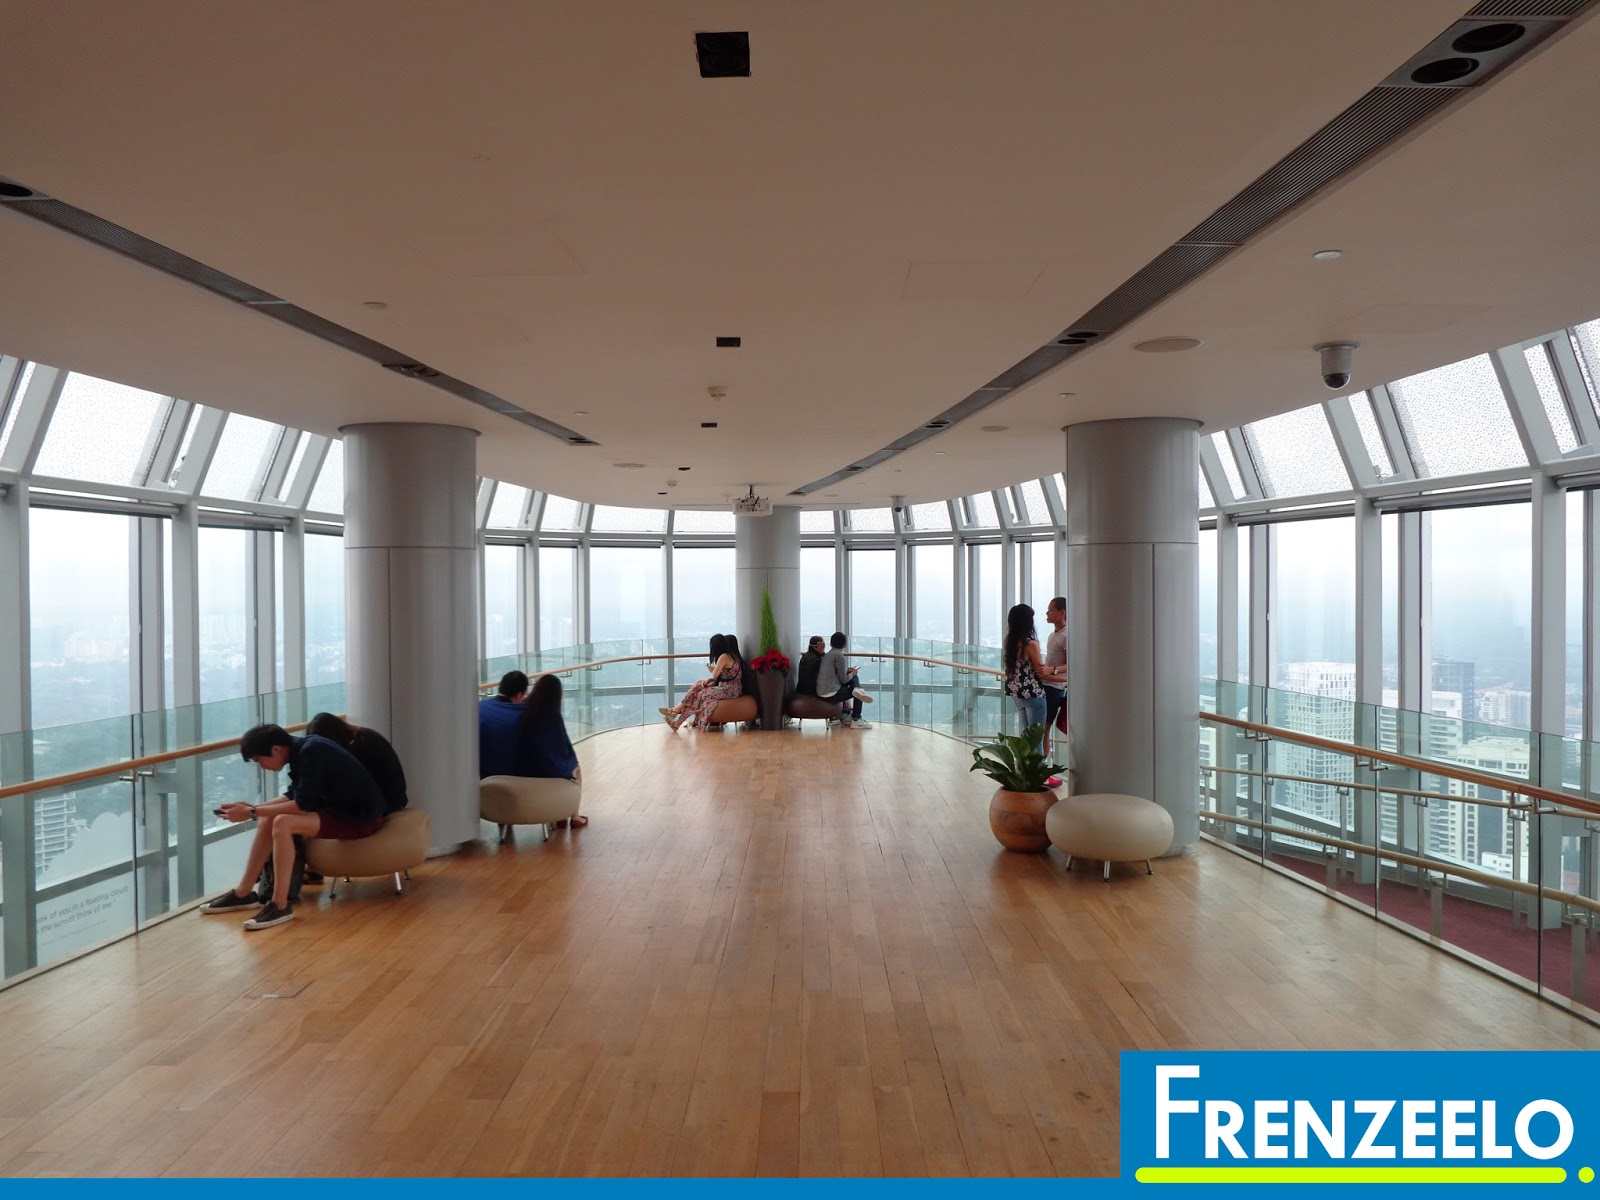 Frenzeelo: Going Sky High At Ion Orchard\'s Ion Sky Observation Deck